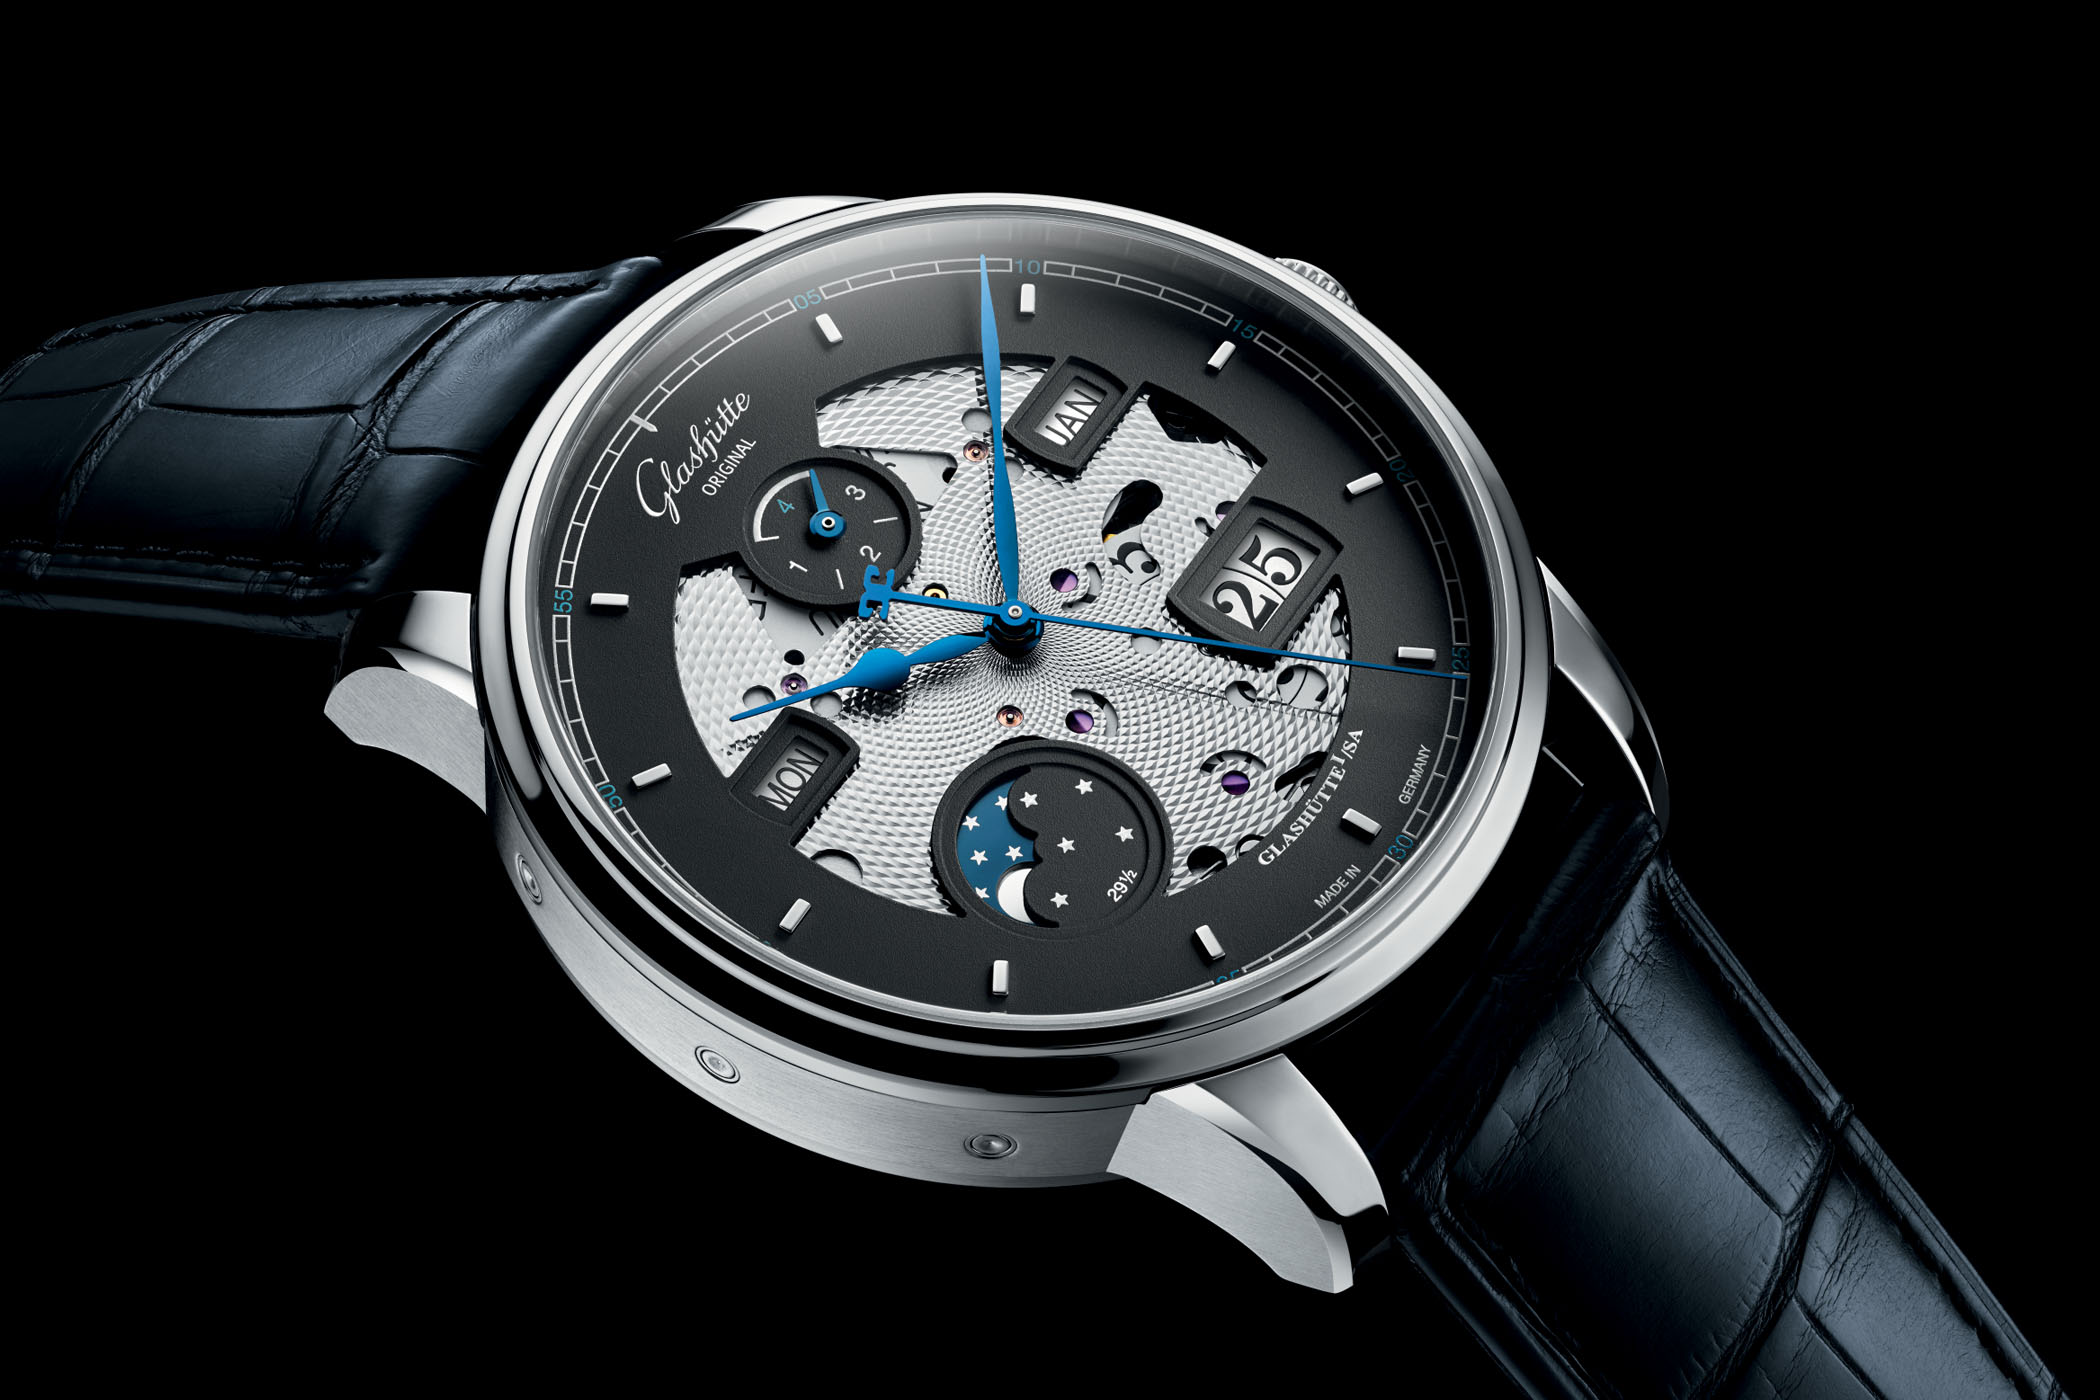 Glashutte Original Senator Excellence Perpetual Calendar Limited Edition - Baselworld 2018